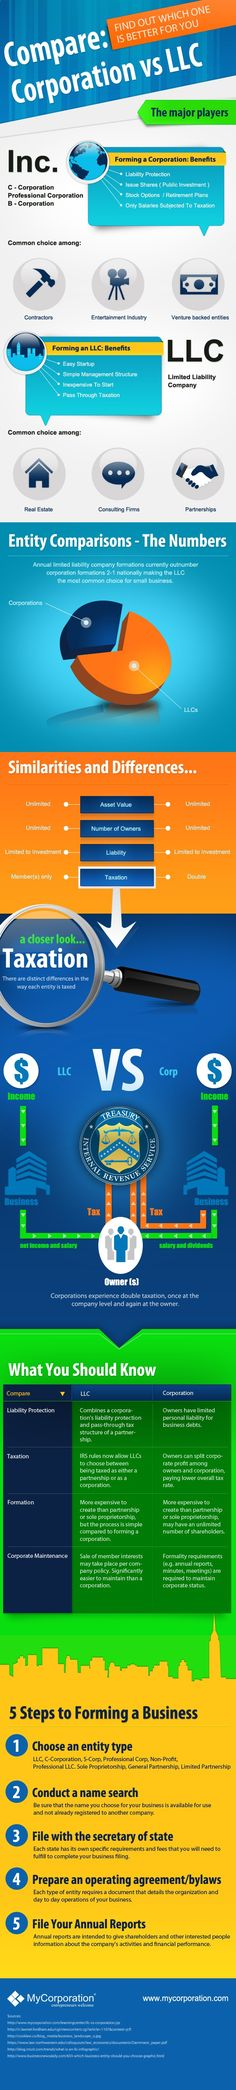 LLCs vs Corporations - starting a small biz? Want to know the difference between an LLC and a Corporation? This infographic from mycorporation.com can help.http://blog.mycorporation.com/2013/10/llcs-vs-corporations-which-entity-is-best-for-your-business-infographic/